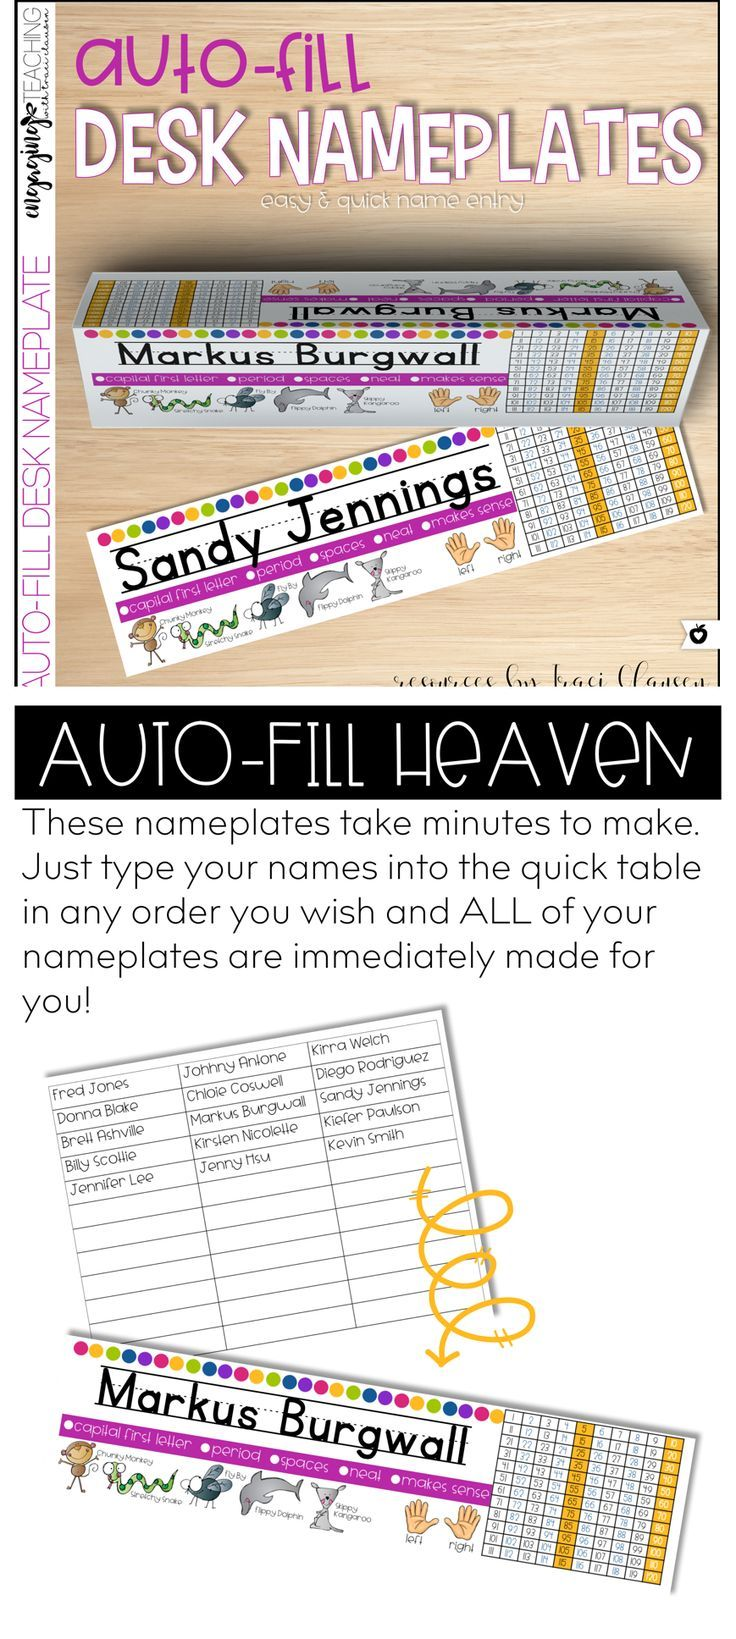 Auto Fill Desk Nameplates!? Yes PLEASE! Super time saver, adorable, and resourceful! Video preview available, too!